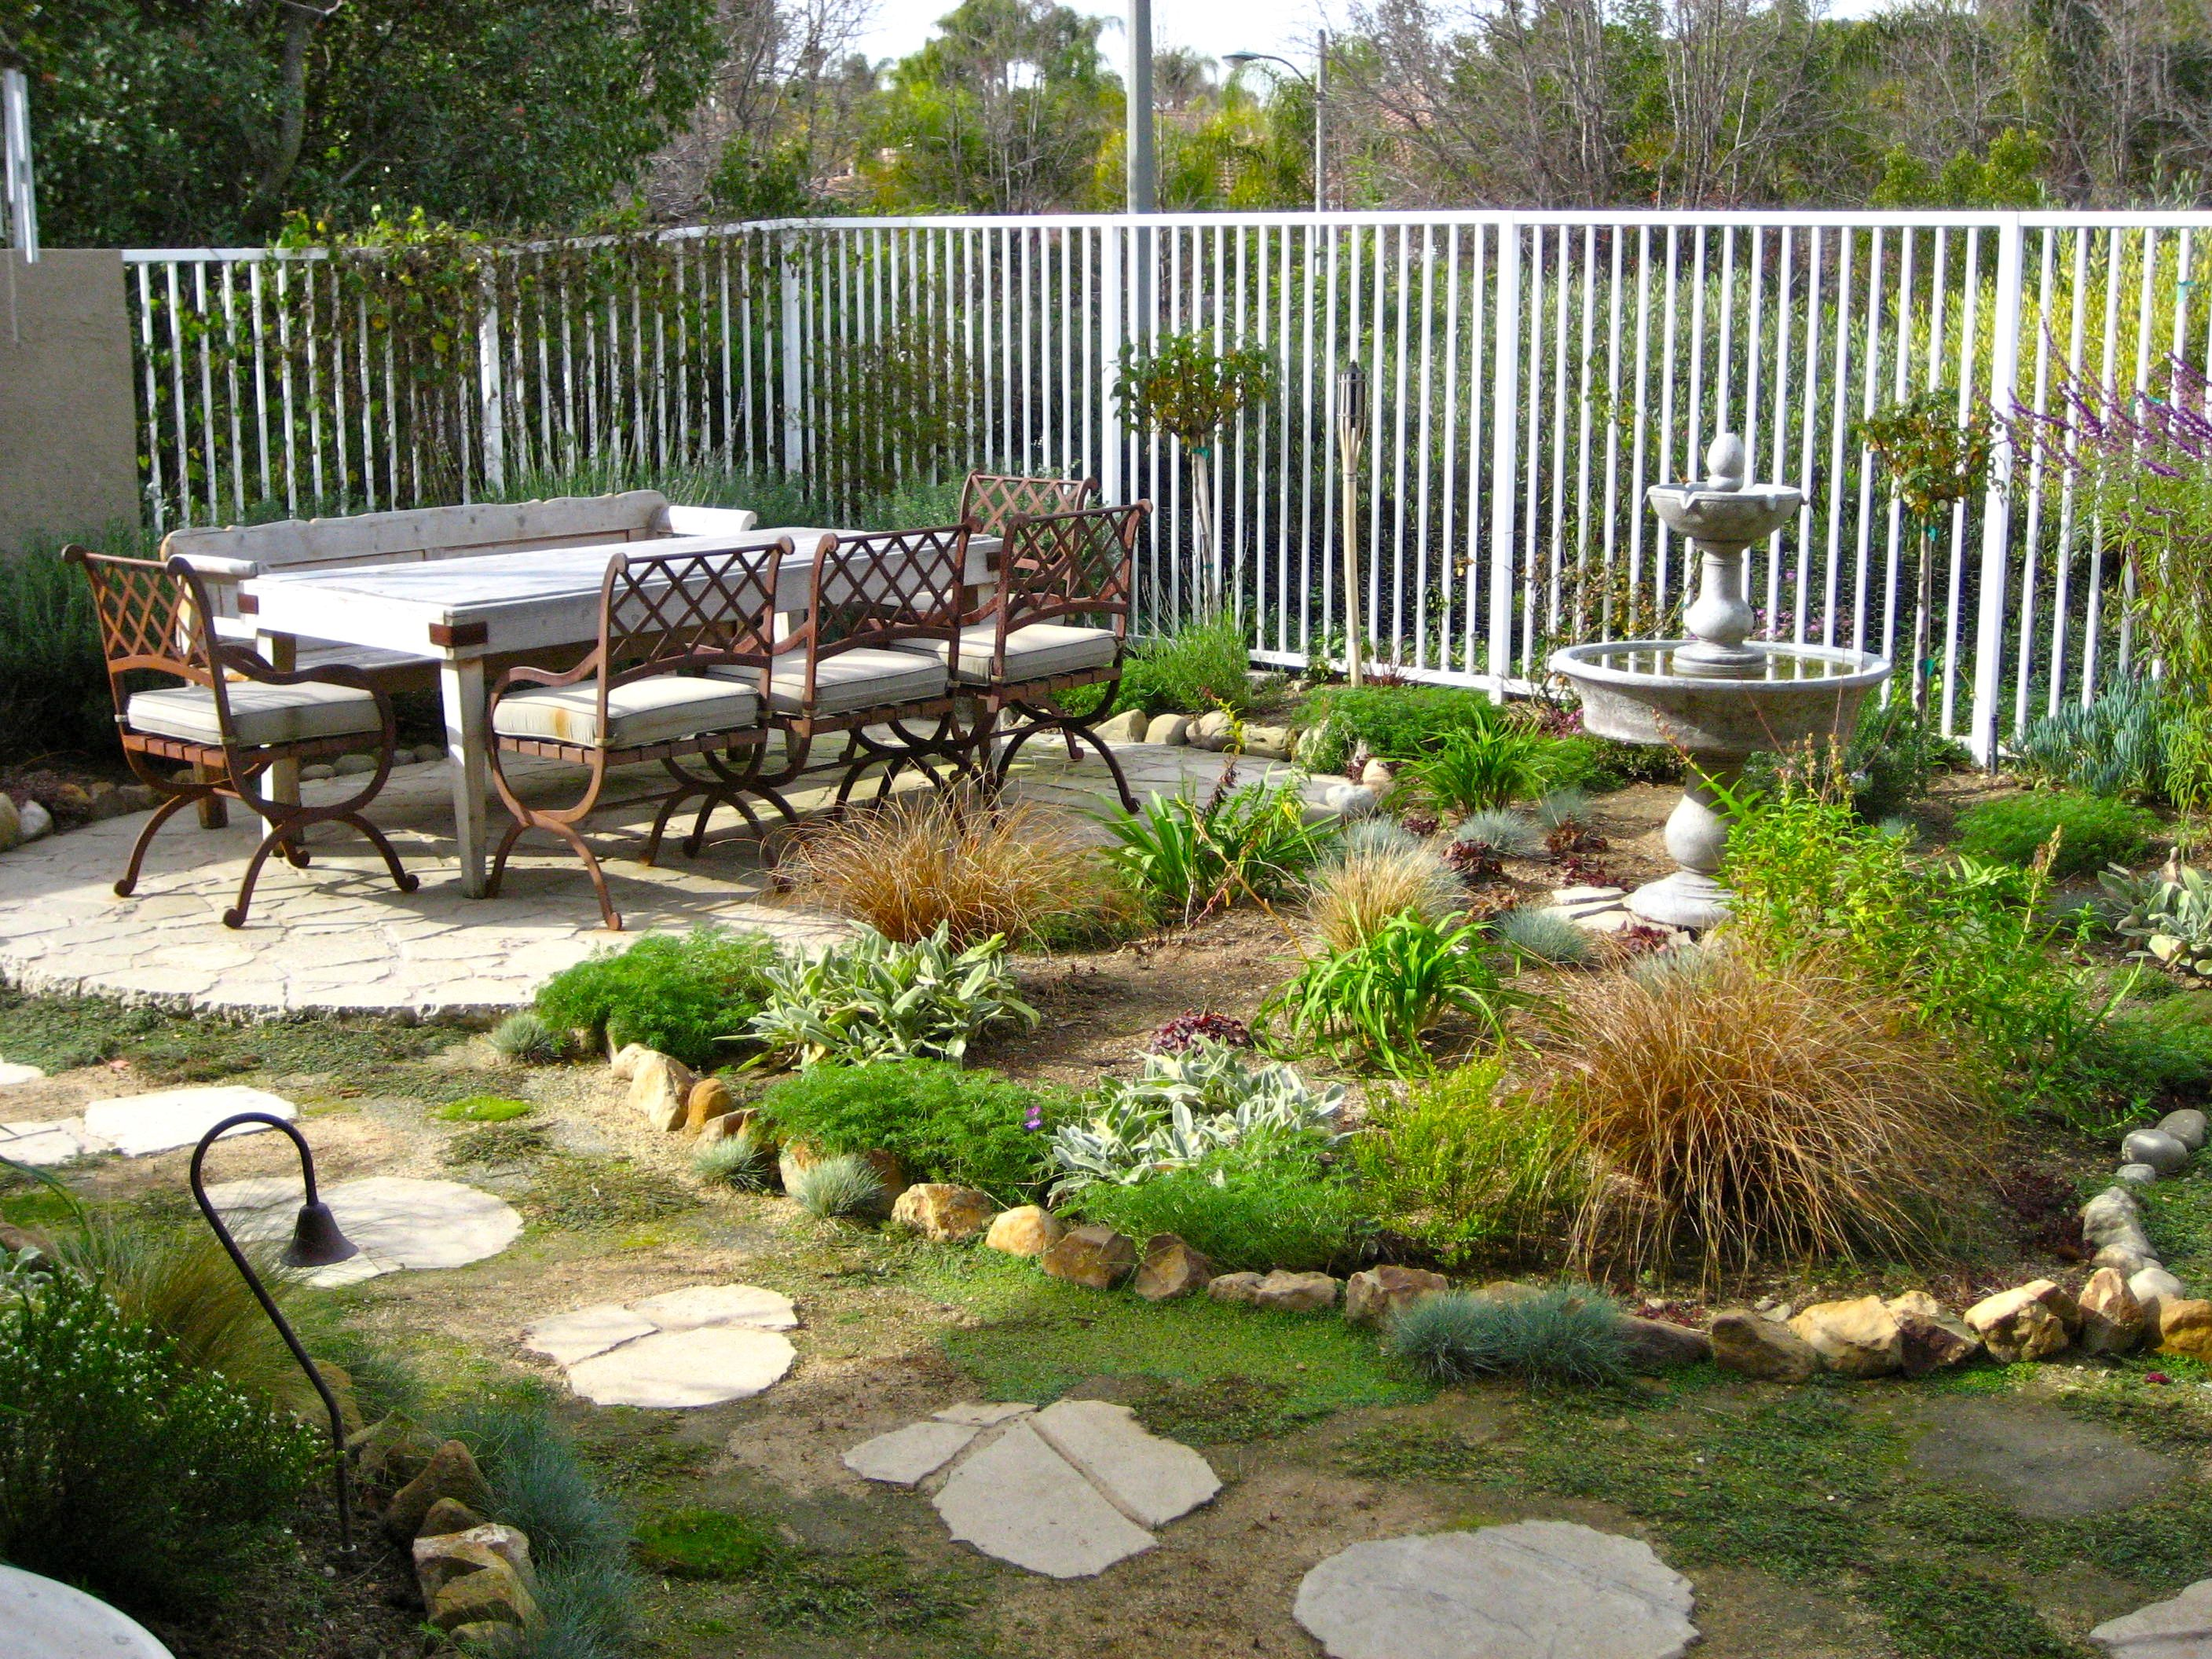 backyard landscaping design ideas on a budget backyard furniture ideas - Small Backyard Design Ideas On A Budget